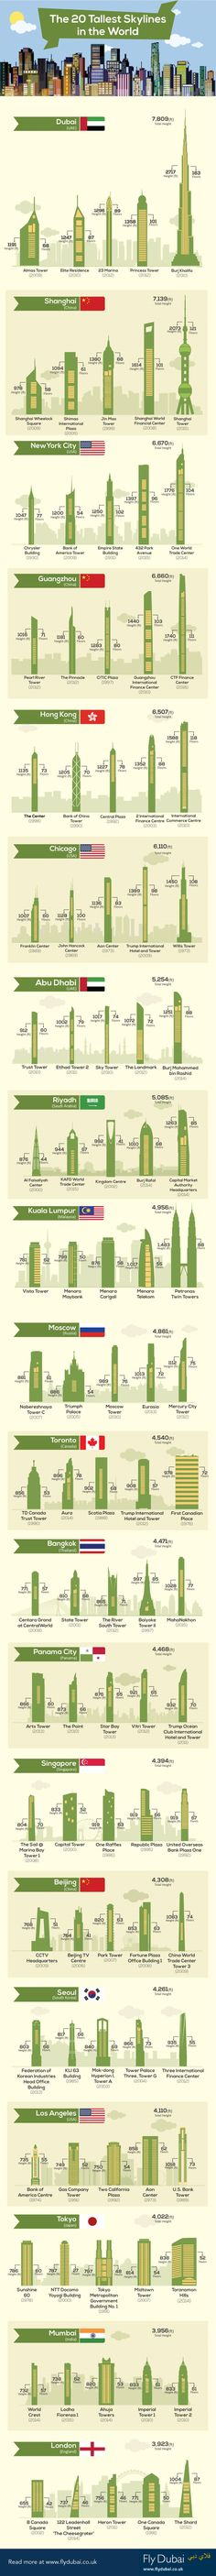 The 20 Tallest Skylines In The World #infographic